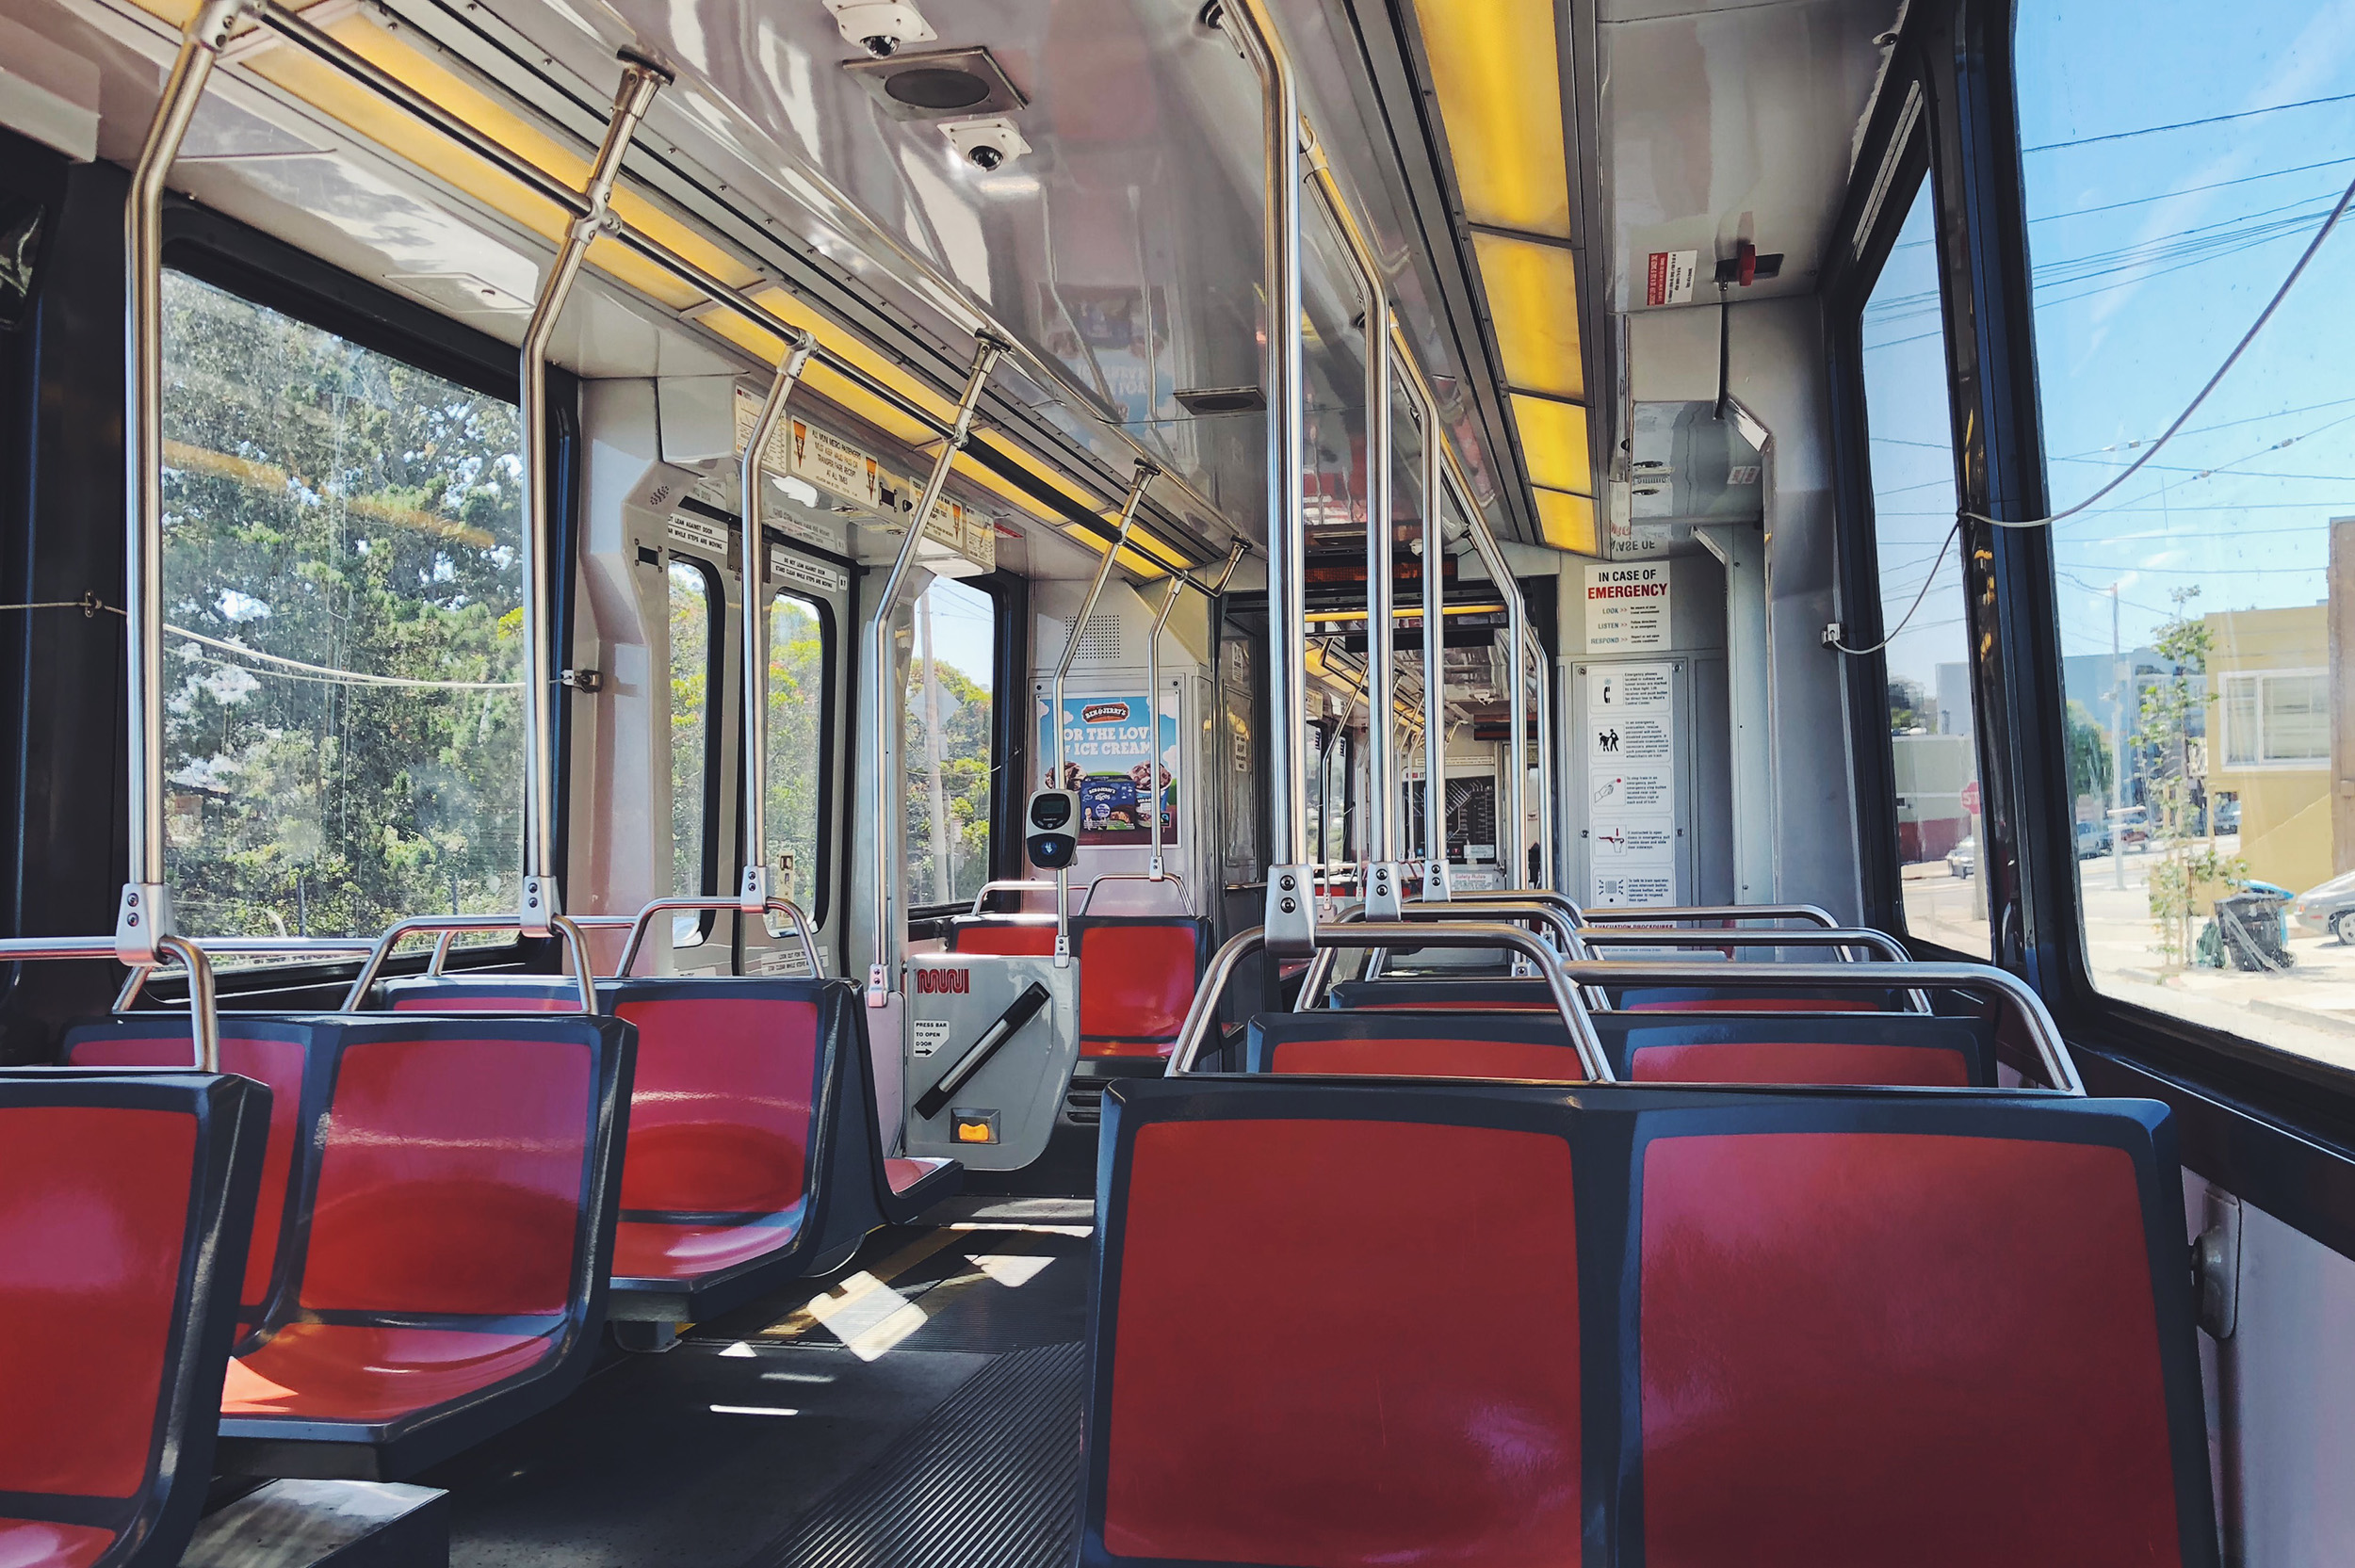 That time when I was the only passenger on the train and it wasn't late at night.